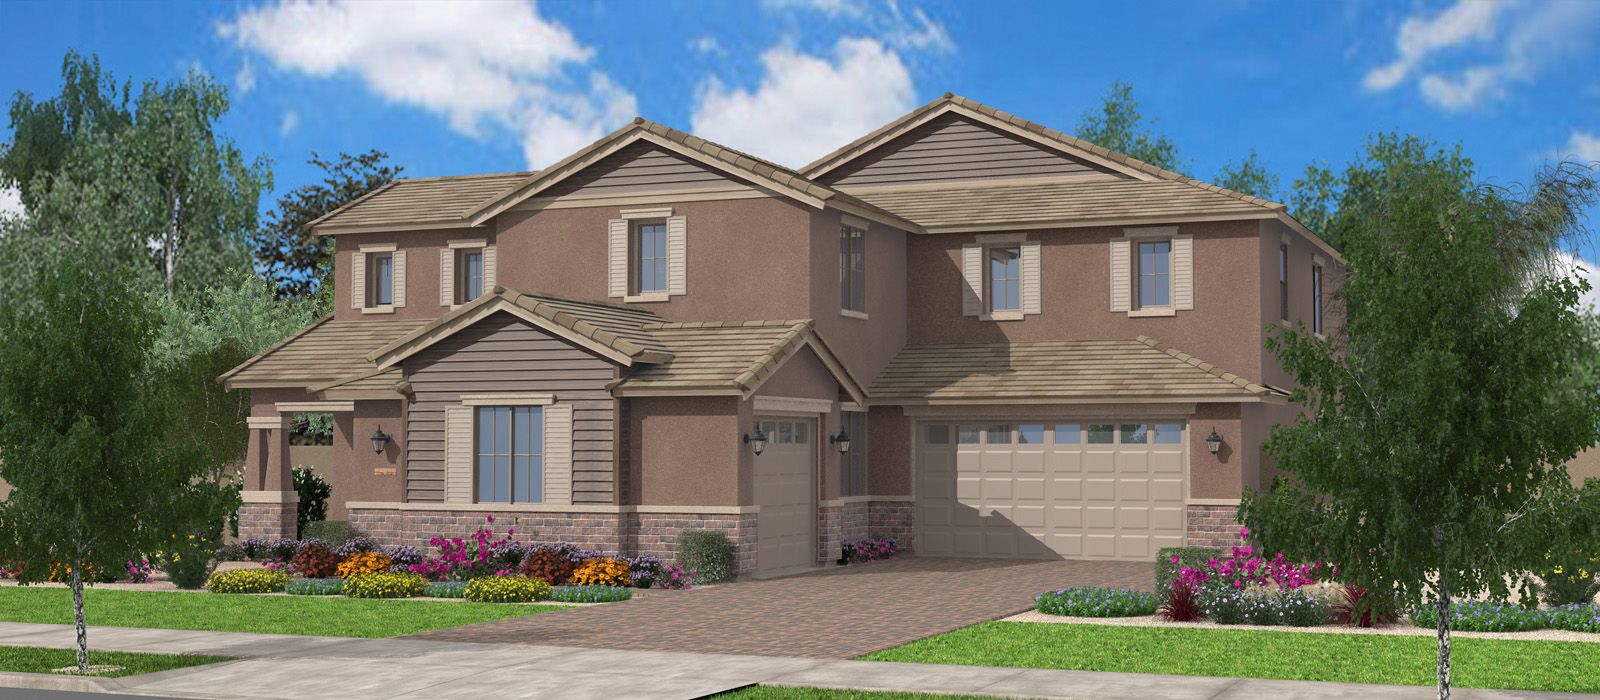 Woodside Peninsula At Queen Creek Station By Fulton Homes